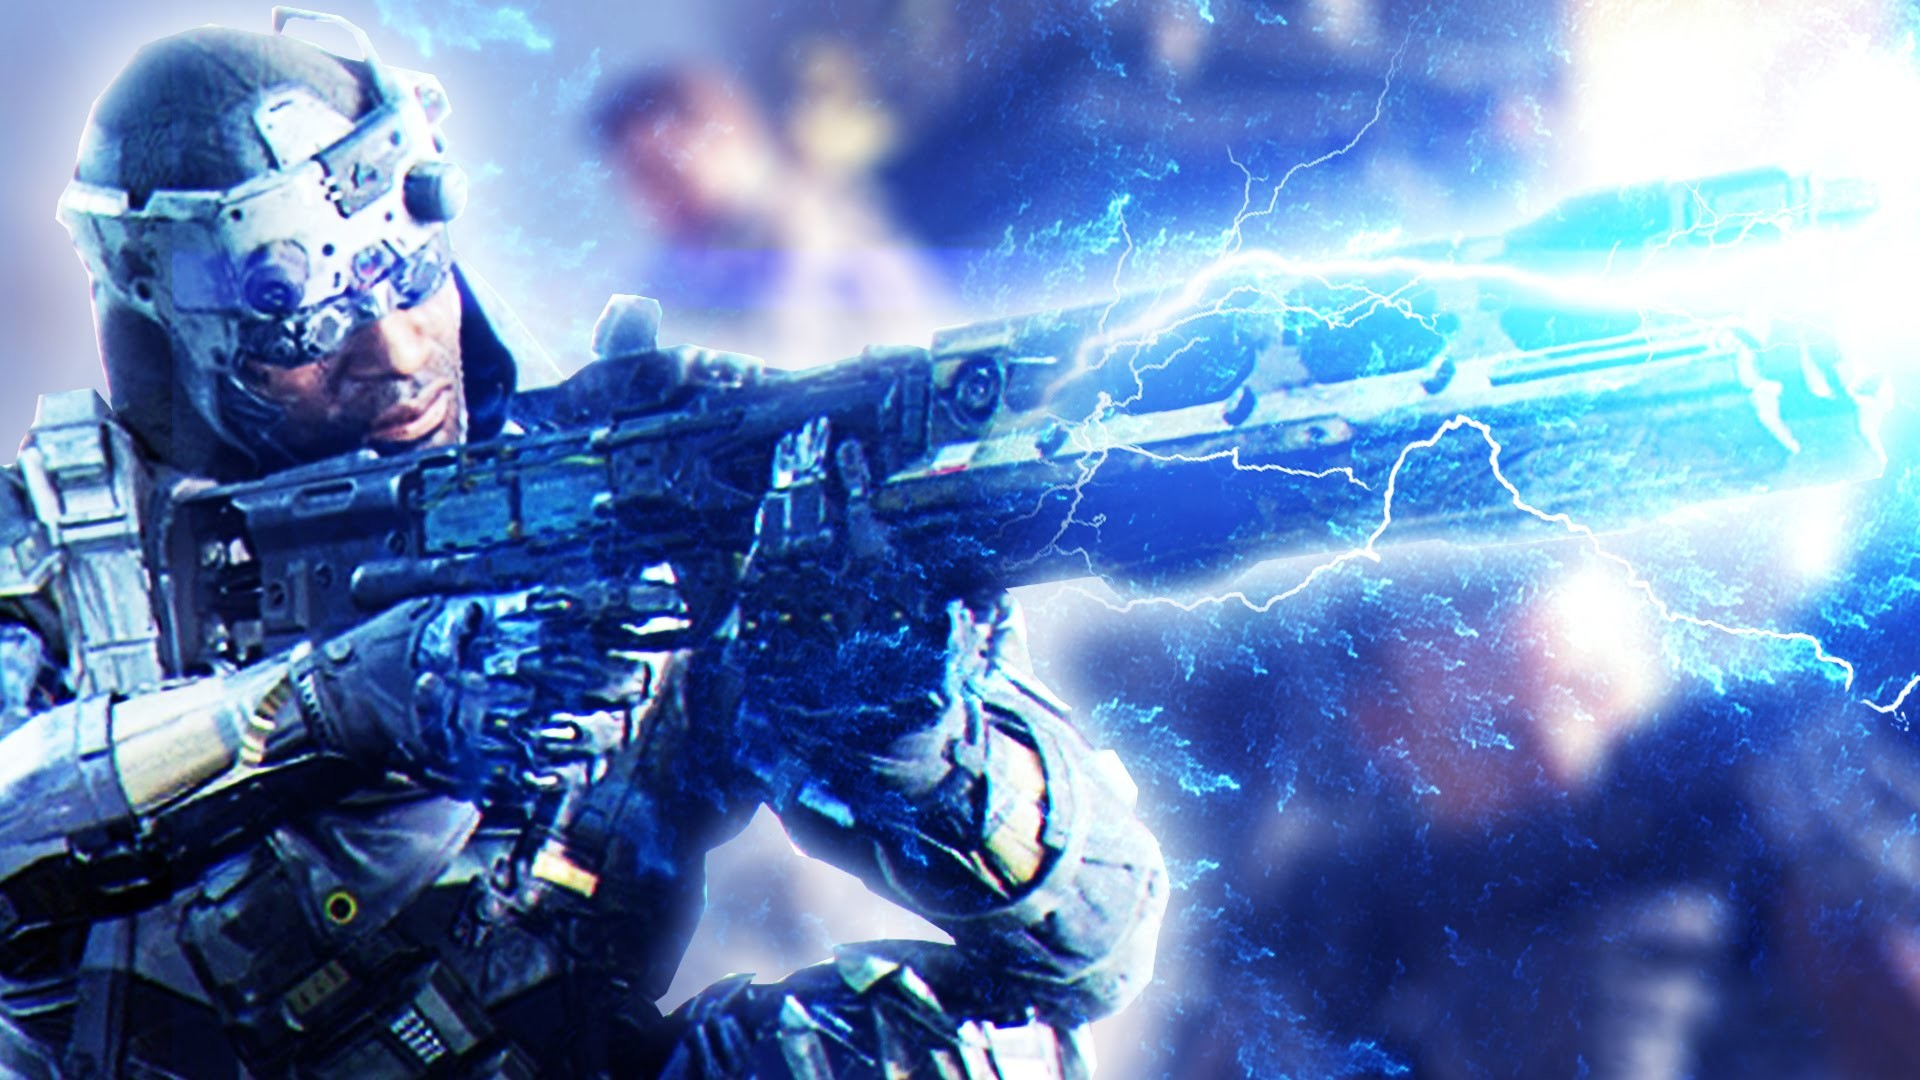 Black Ops 3 Specialist Guide Black Ops 3 Tempest 1920x1080 Wallpaper Teahub Io